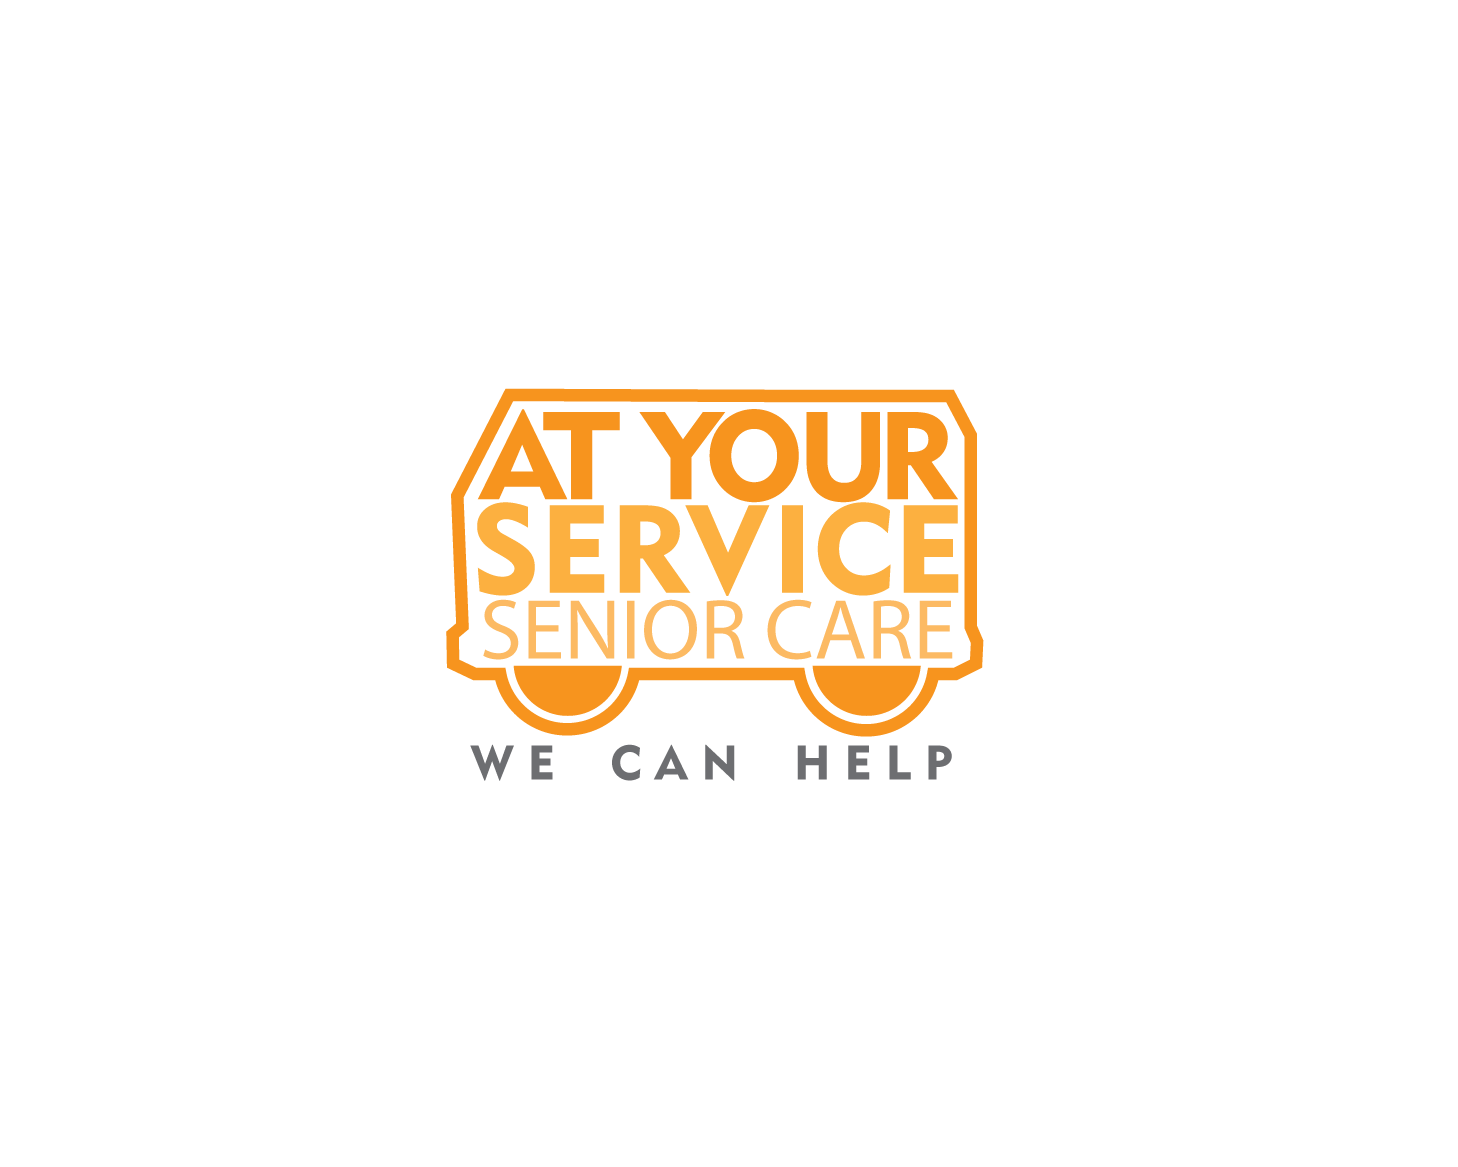 Logo Design by Roy Ferre - Entry No. 10 in the Logo Design Contest Care To Go Services.